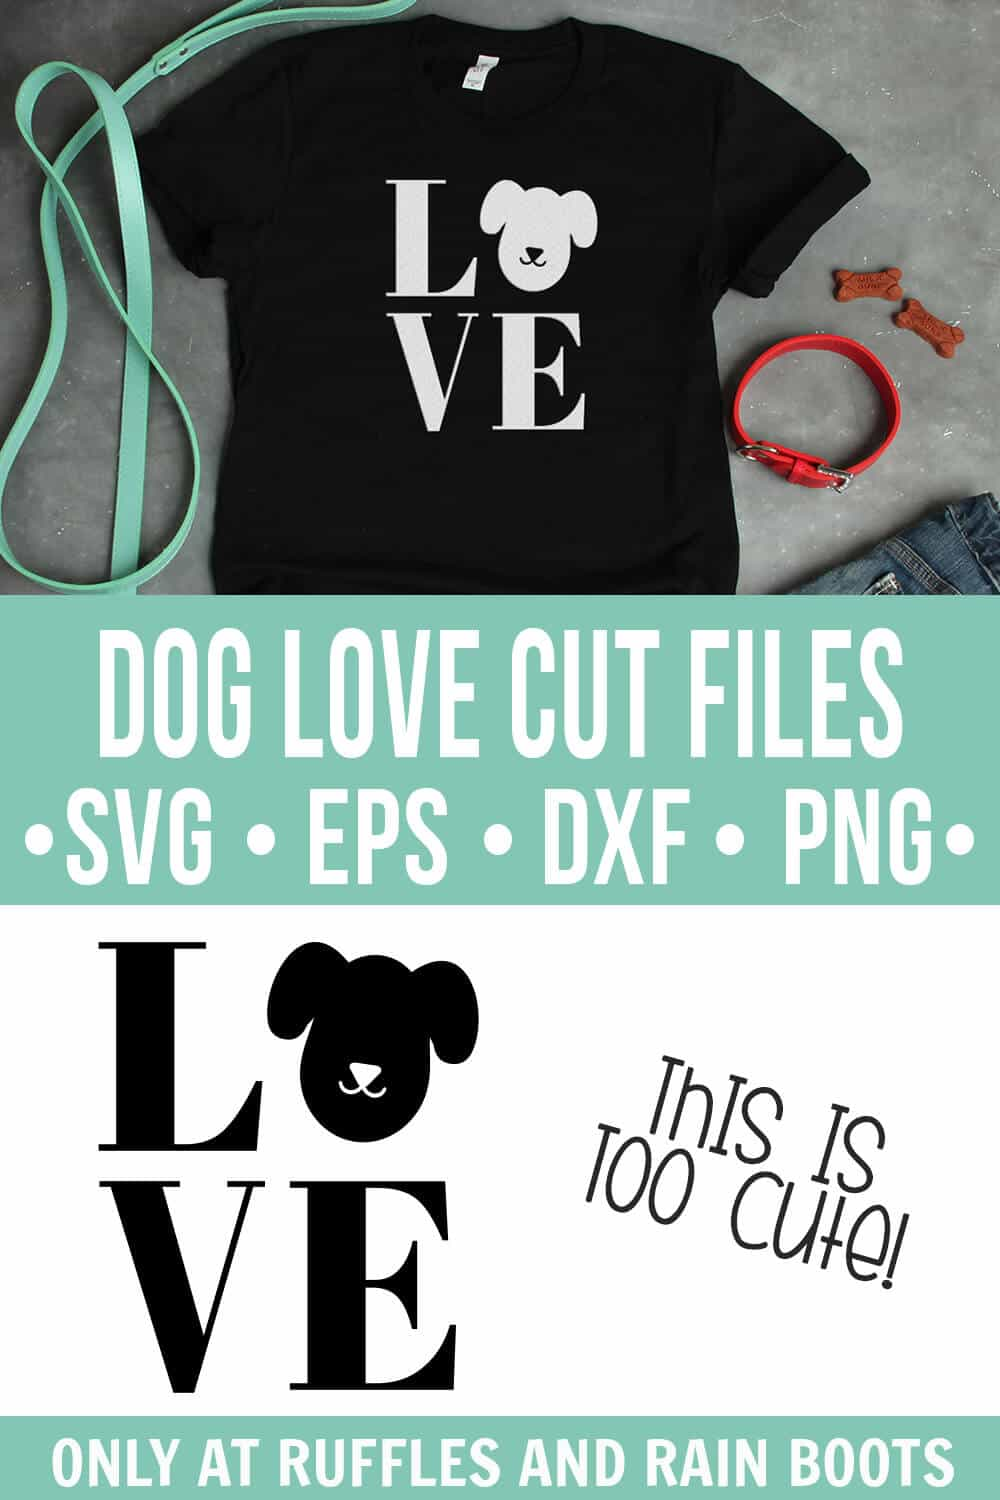 Download Dog LOVE SVG - Dog Cut Files for Cricut and Silhouette ...